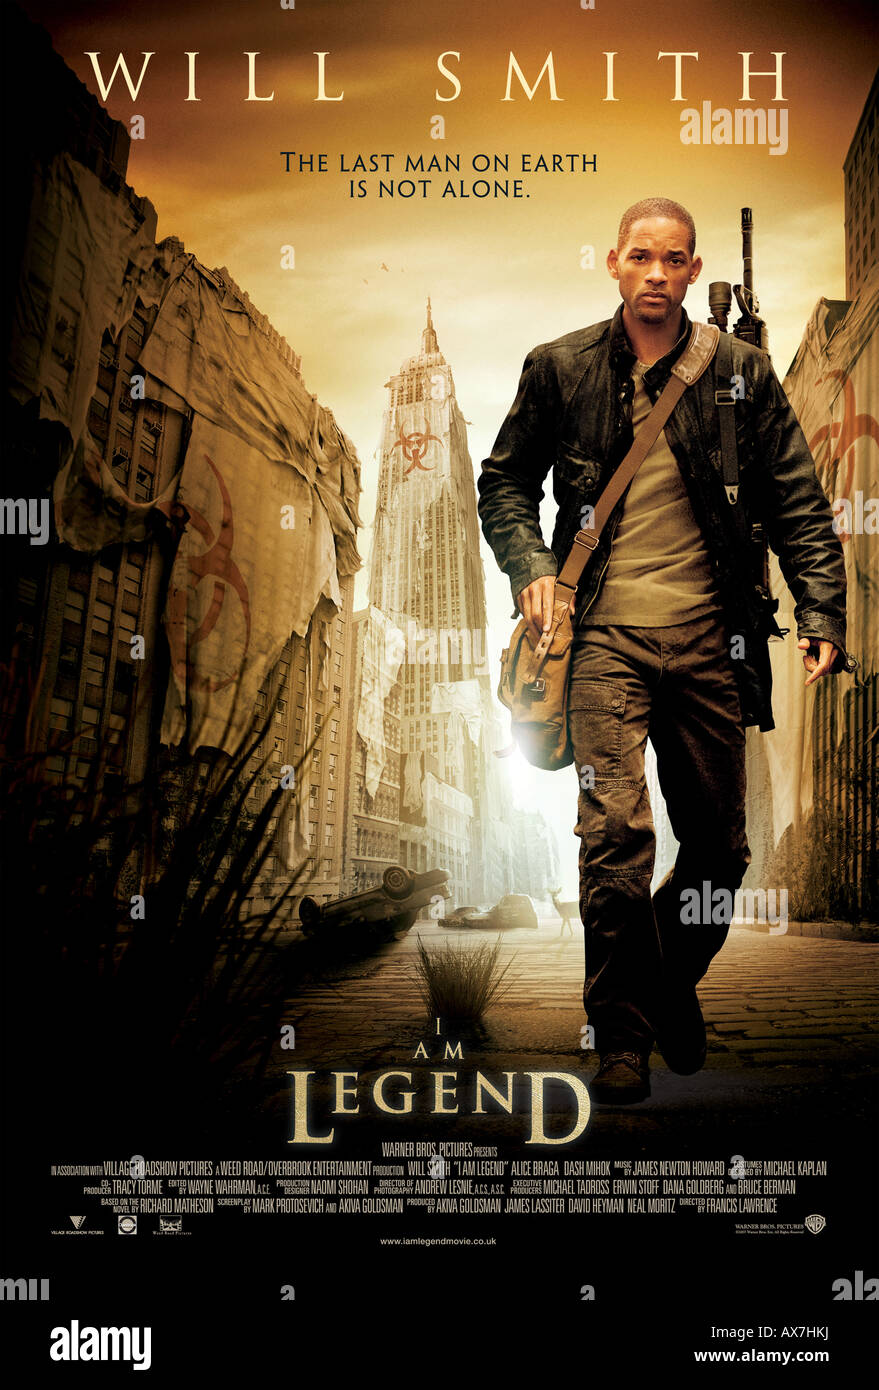 I AM LEGEND - poster for 2007 Warner Bros film with Will Smith - Stock Image